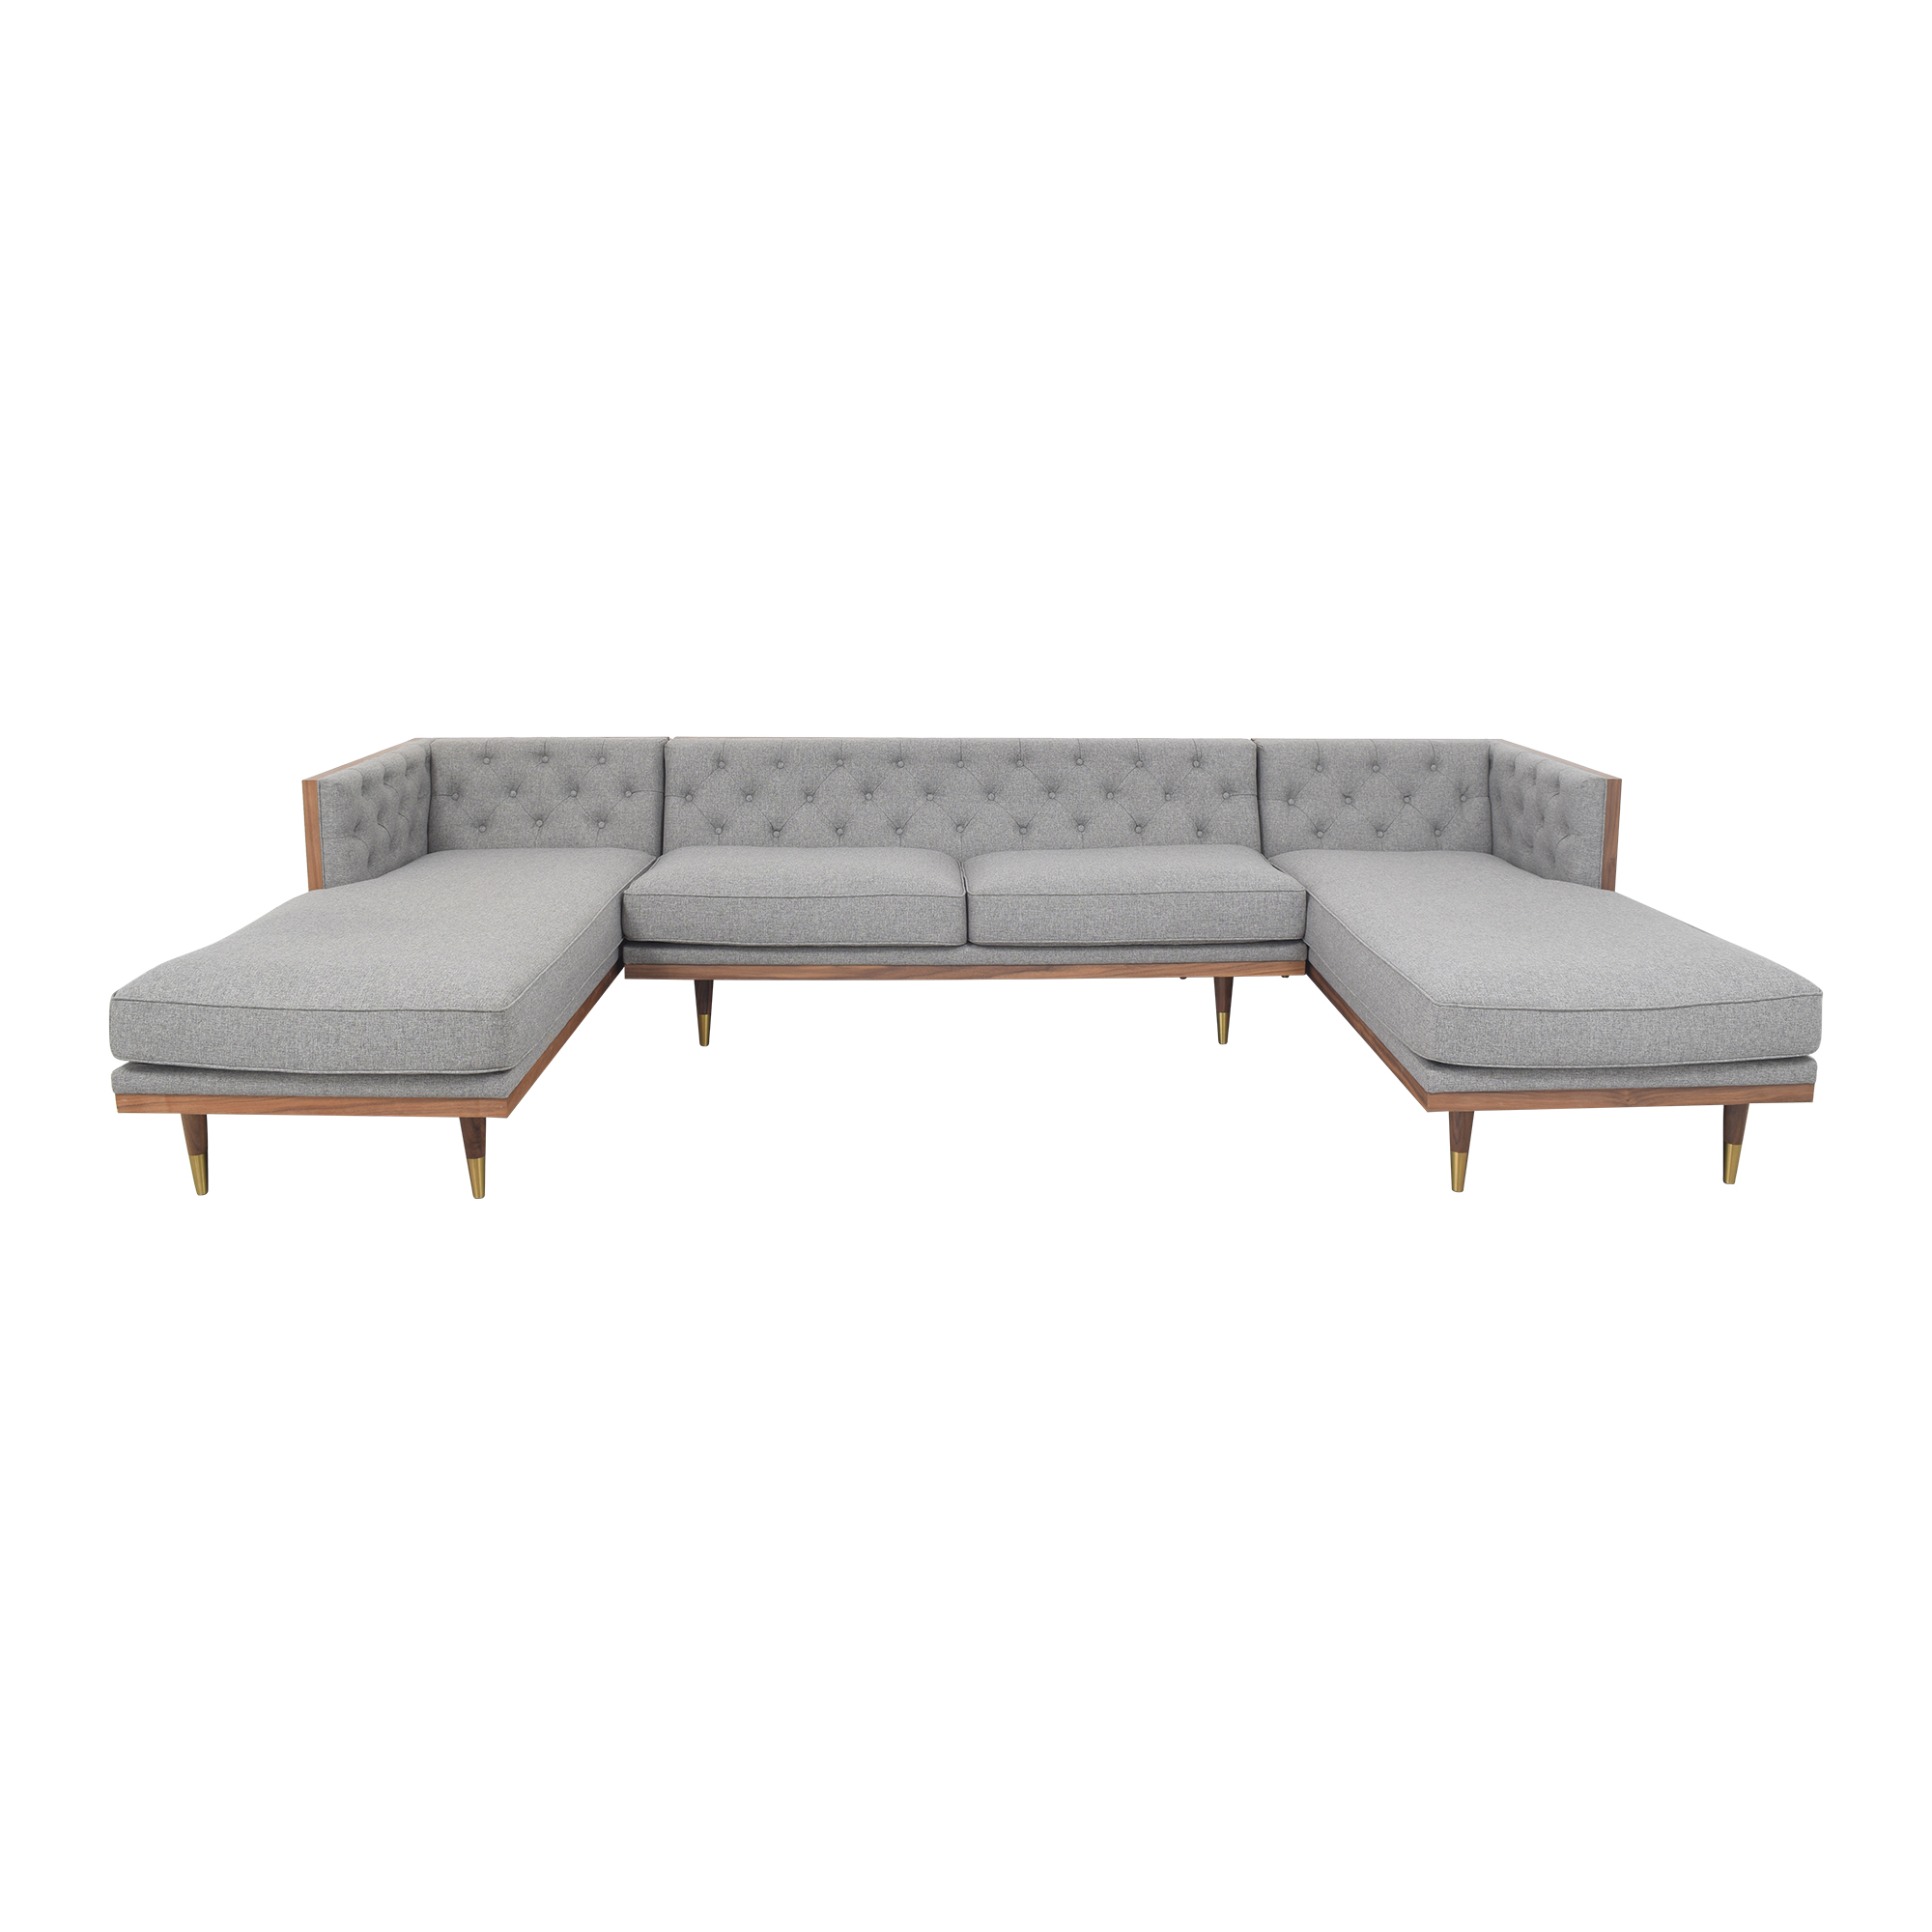 Kardiel Kardiel Woodrow Neo U-Sectional Sofa nyc